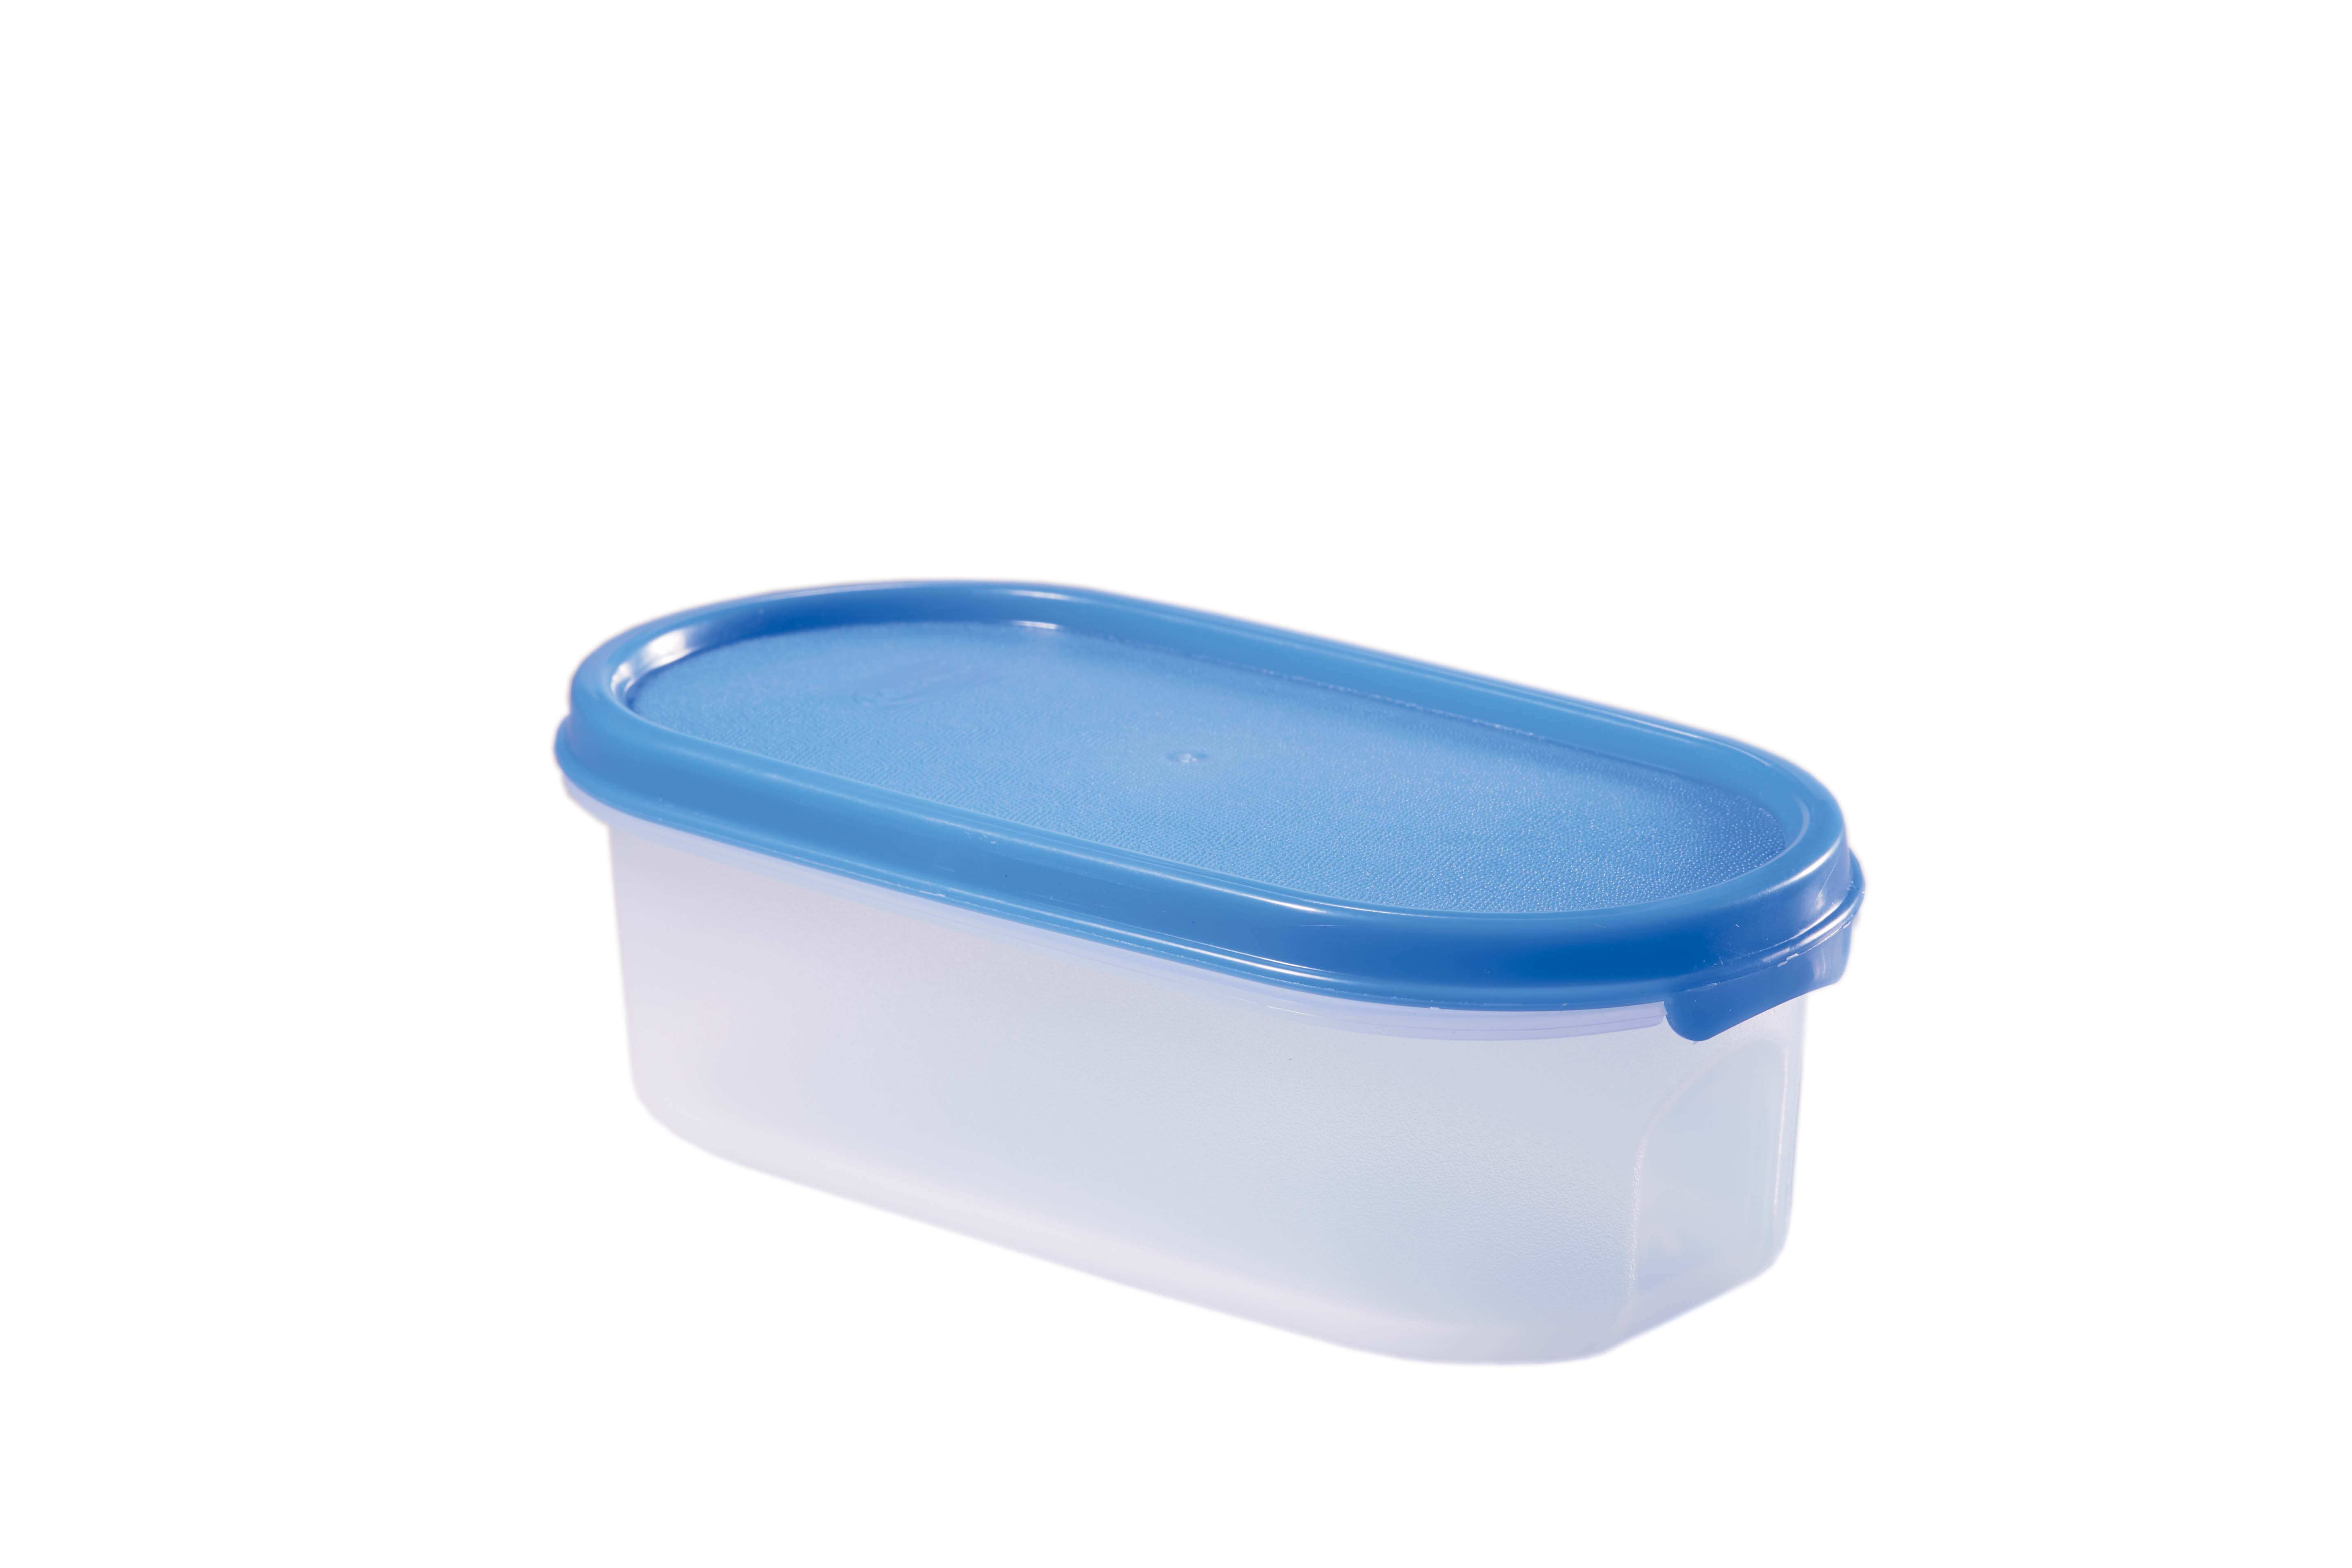 Magic Seal Oval 0.5 Blue Polyproplene Containers in Transparent With Blue Lid Colour by Living Essence